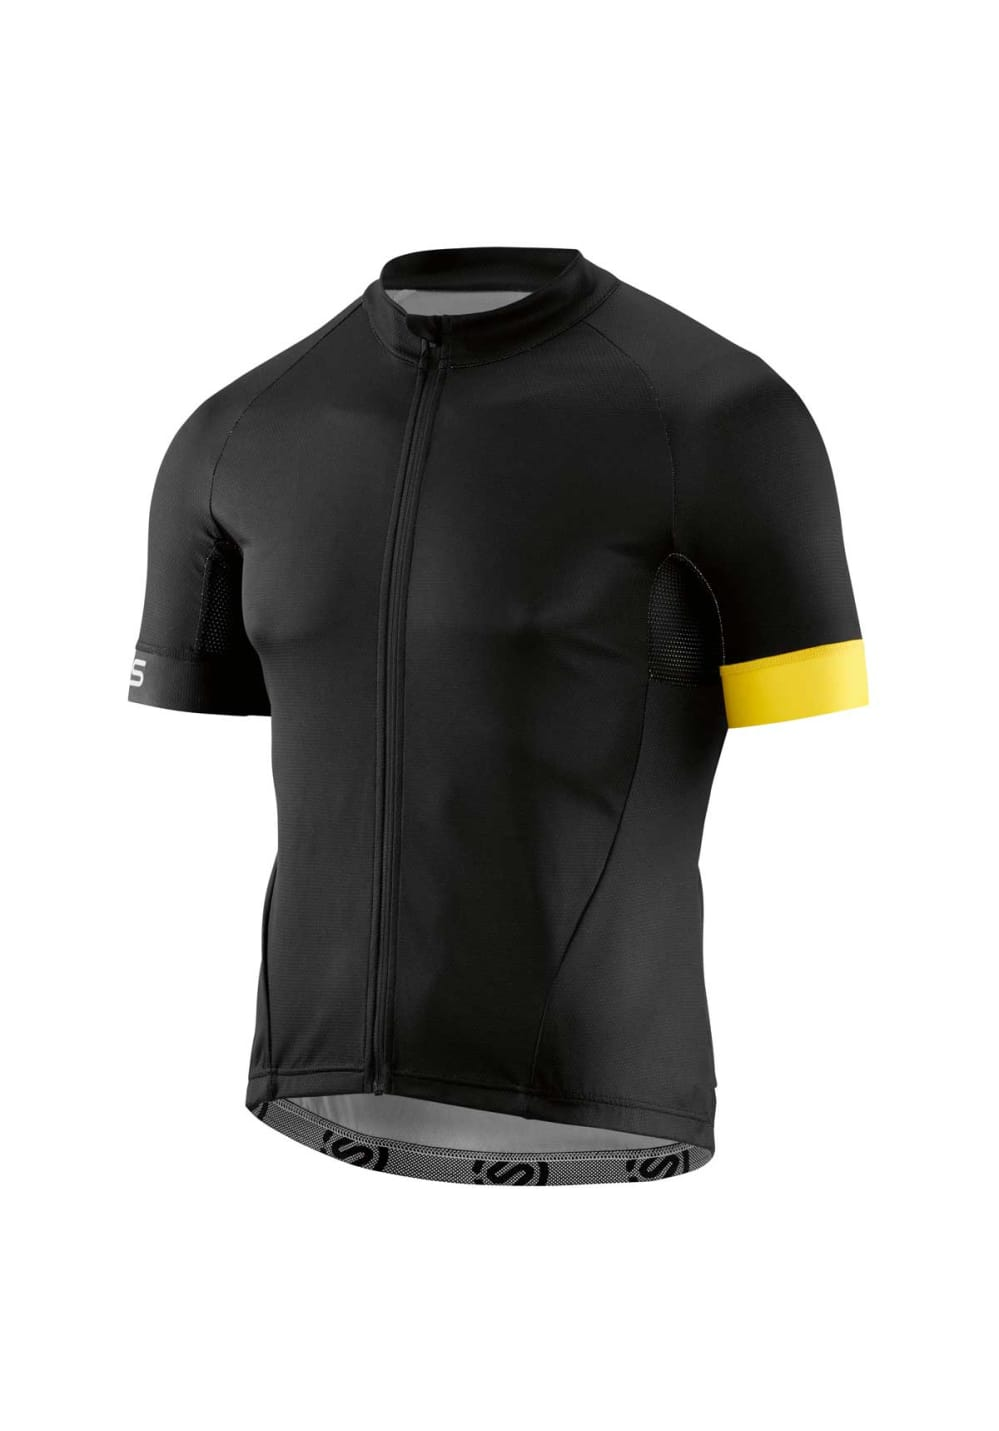 Skins Cycle Classic Short Sleeve Jersey - Radtr...